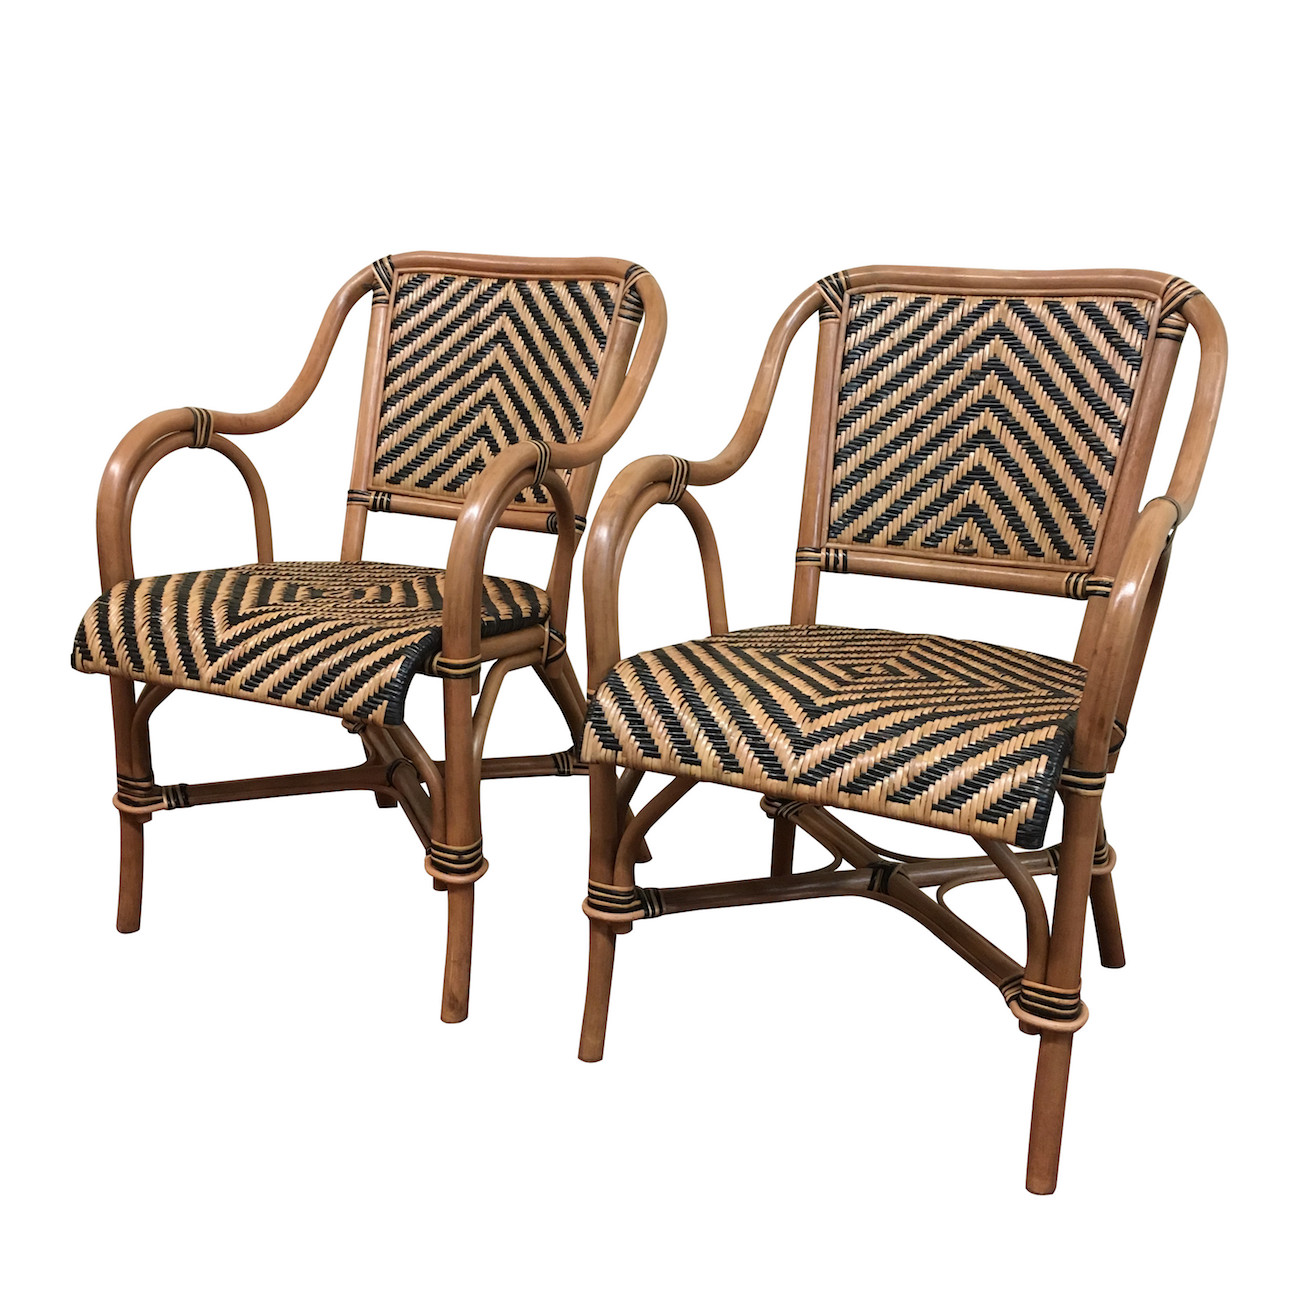 Bamboo Dining Chair A Pair Of Safari Rattan Dining Arm Chairs Wicker Paradise